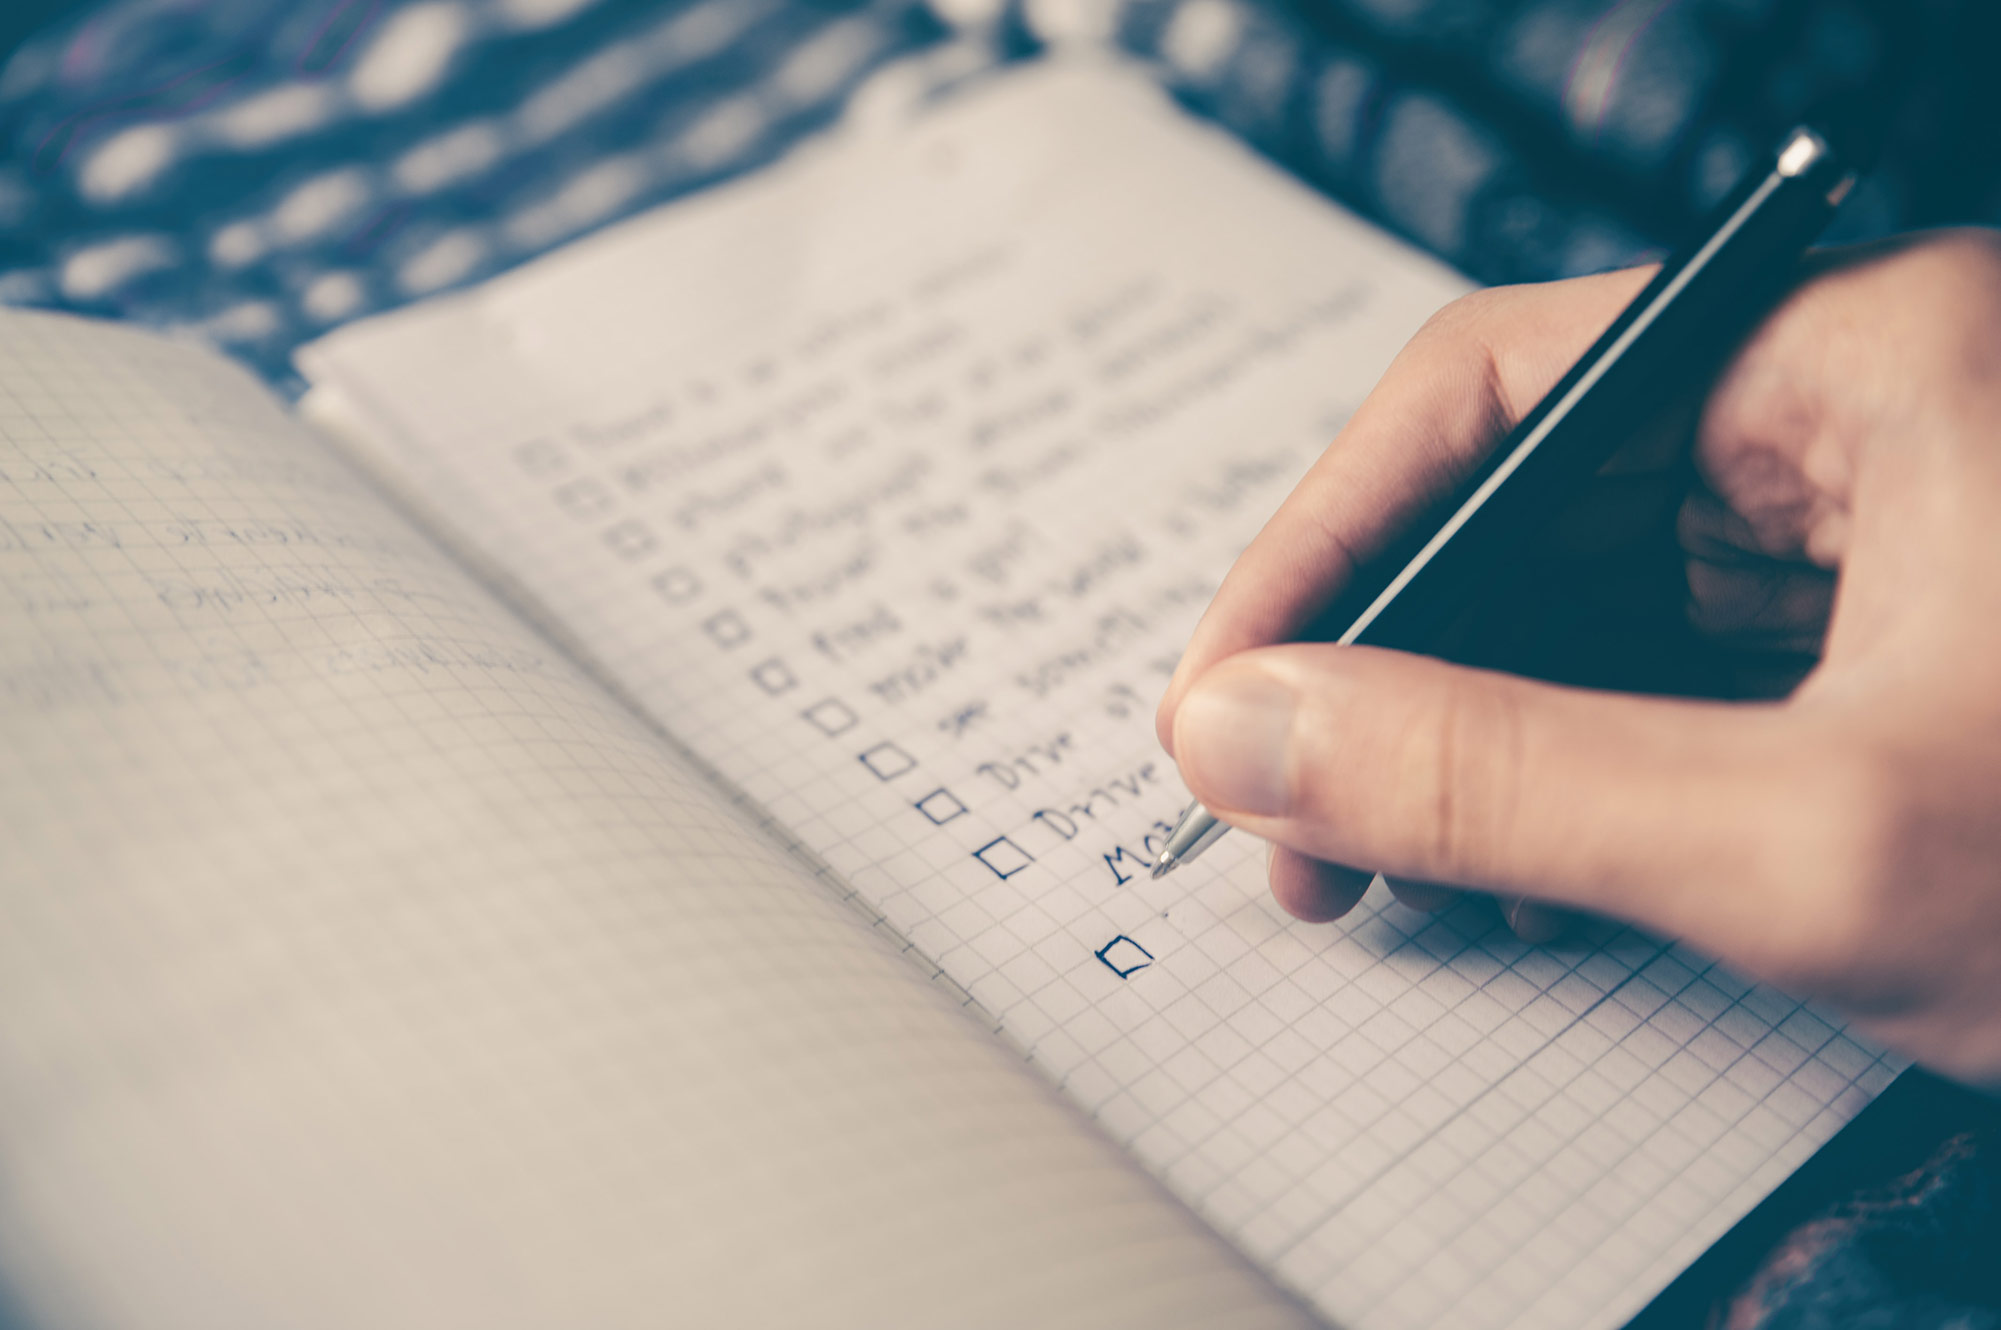 making a list of skills in a notebook